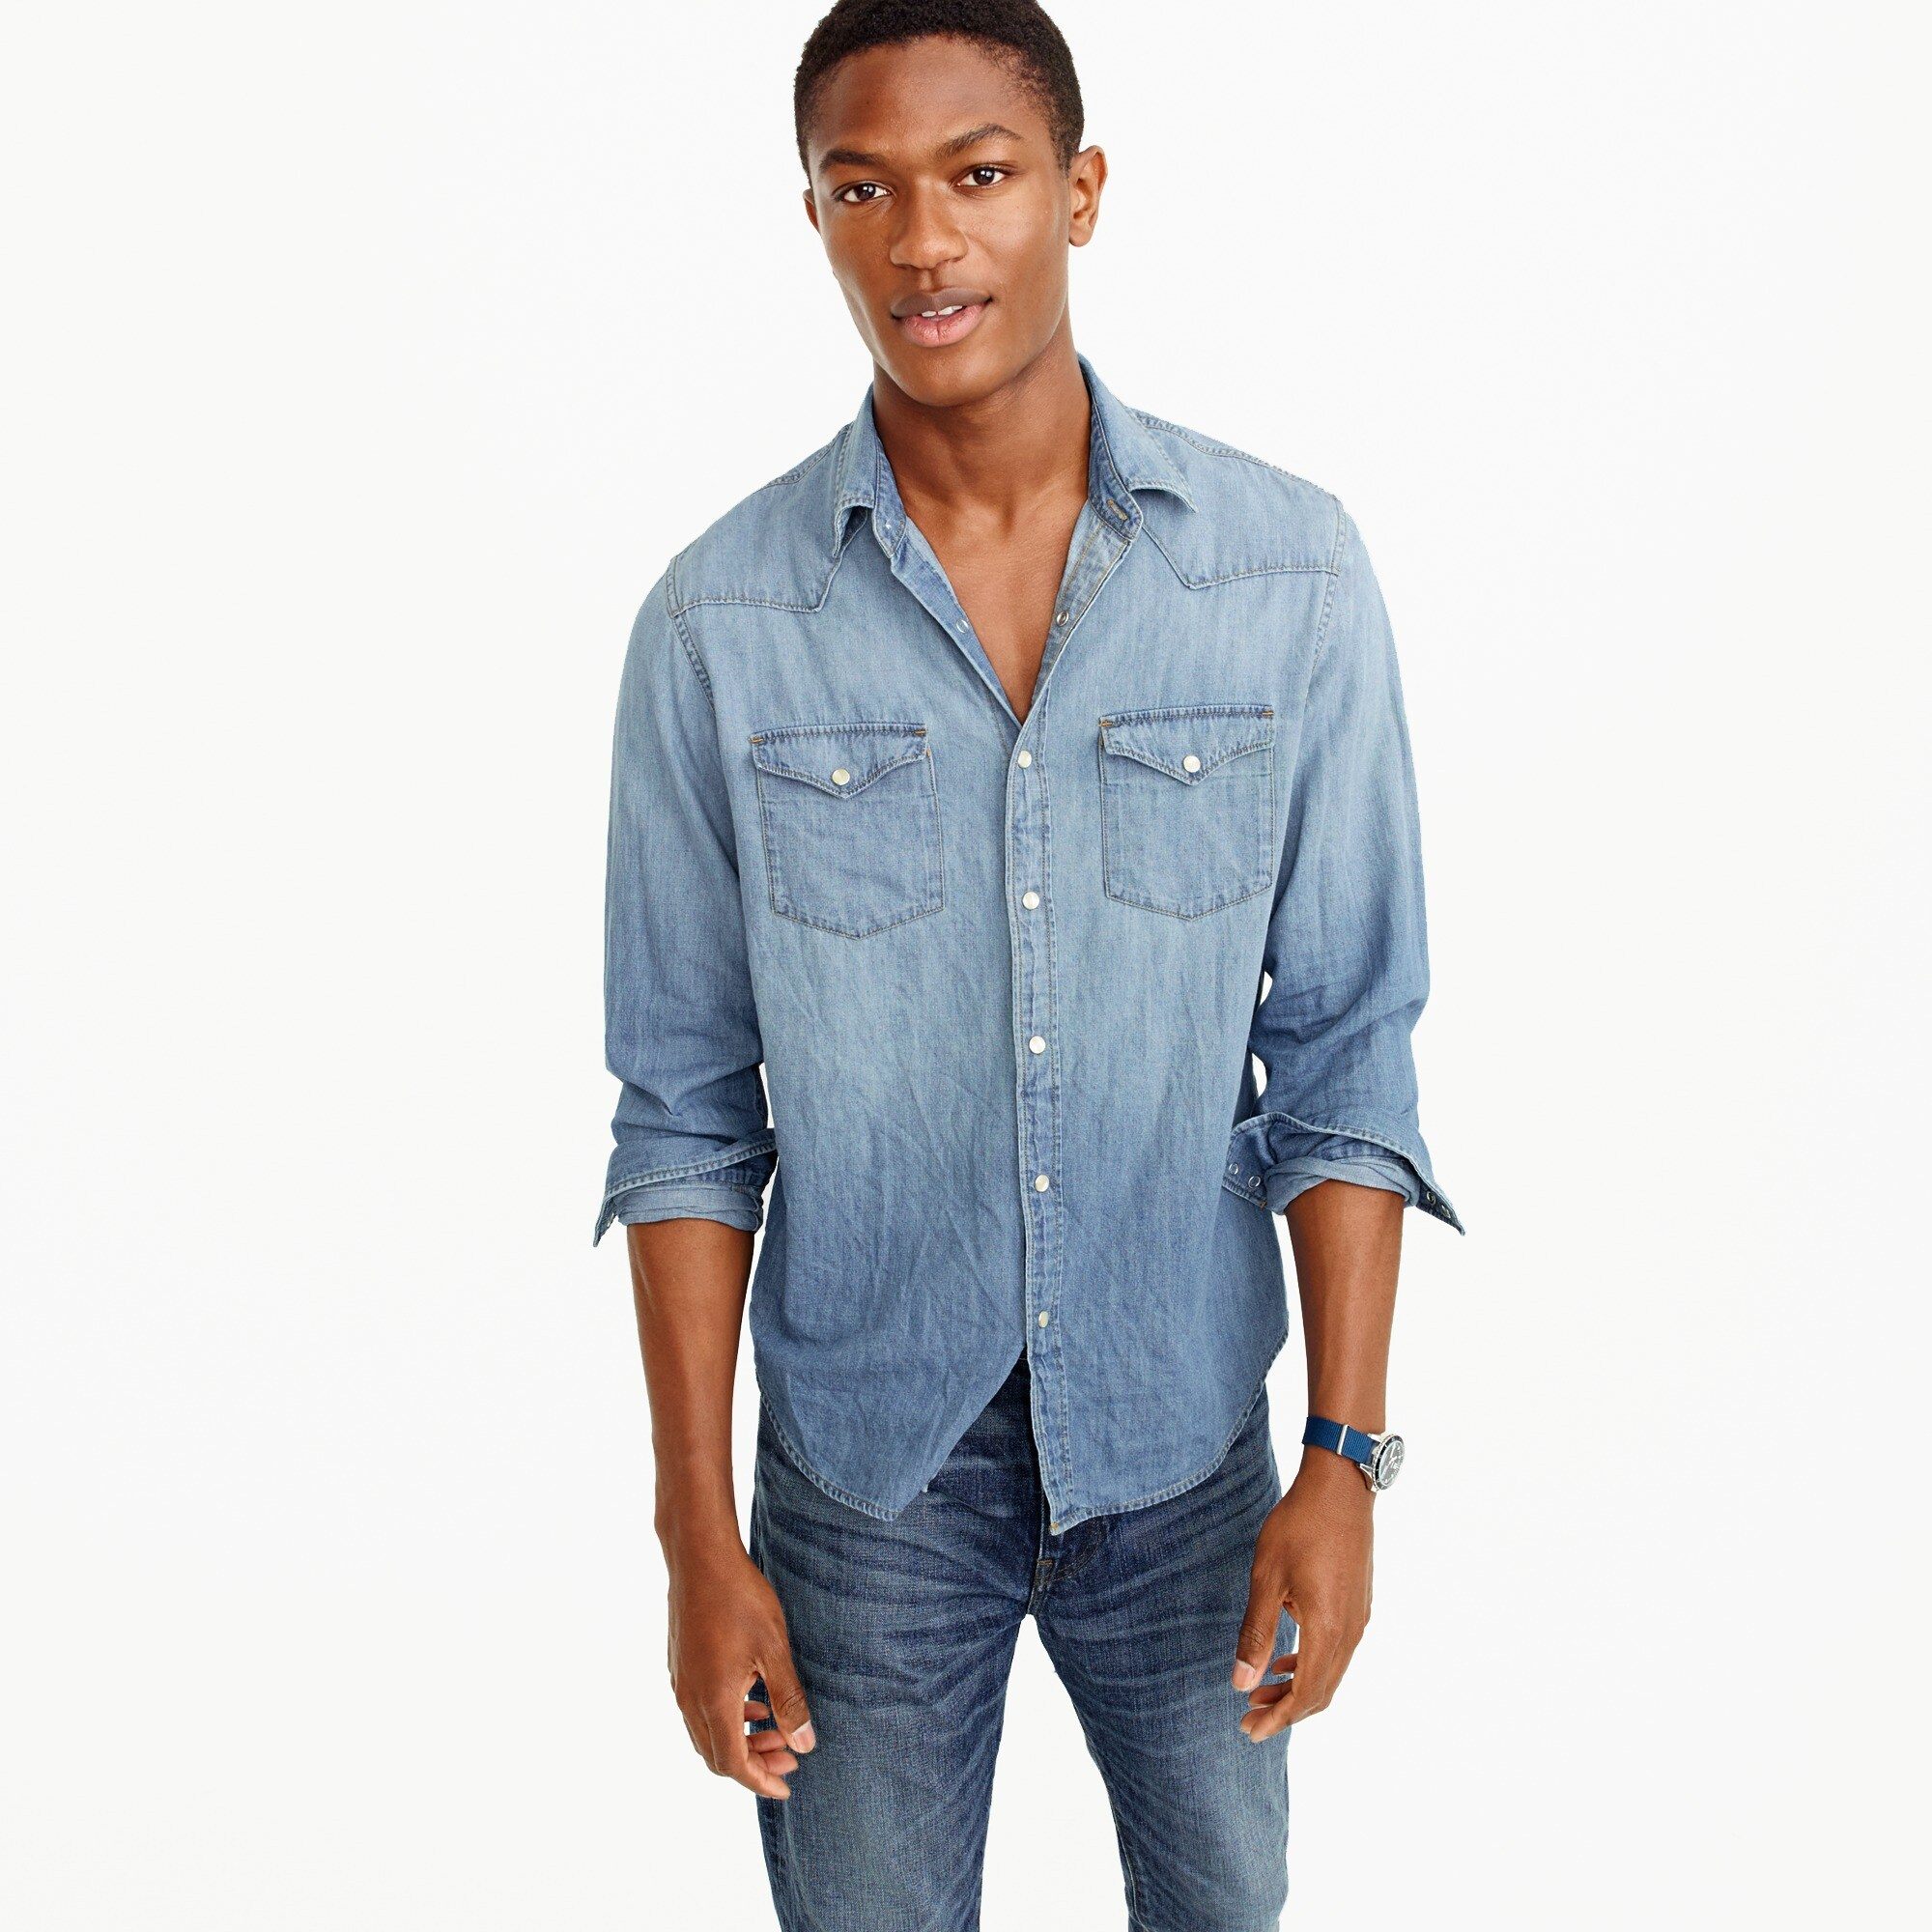 mens Lightweight denim Western shirt